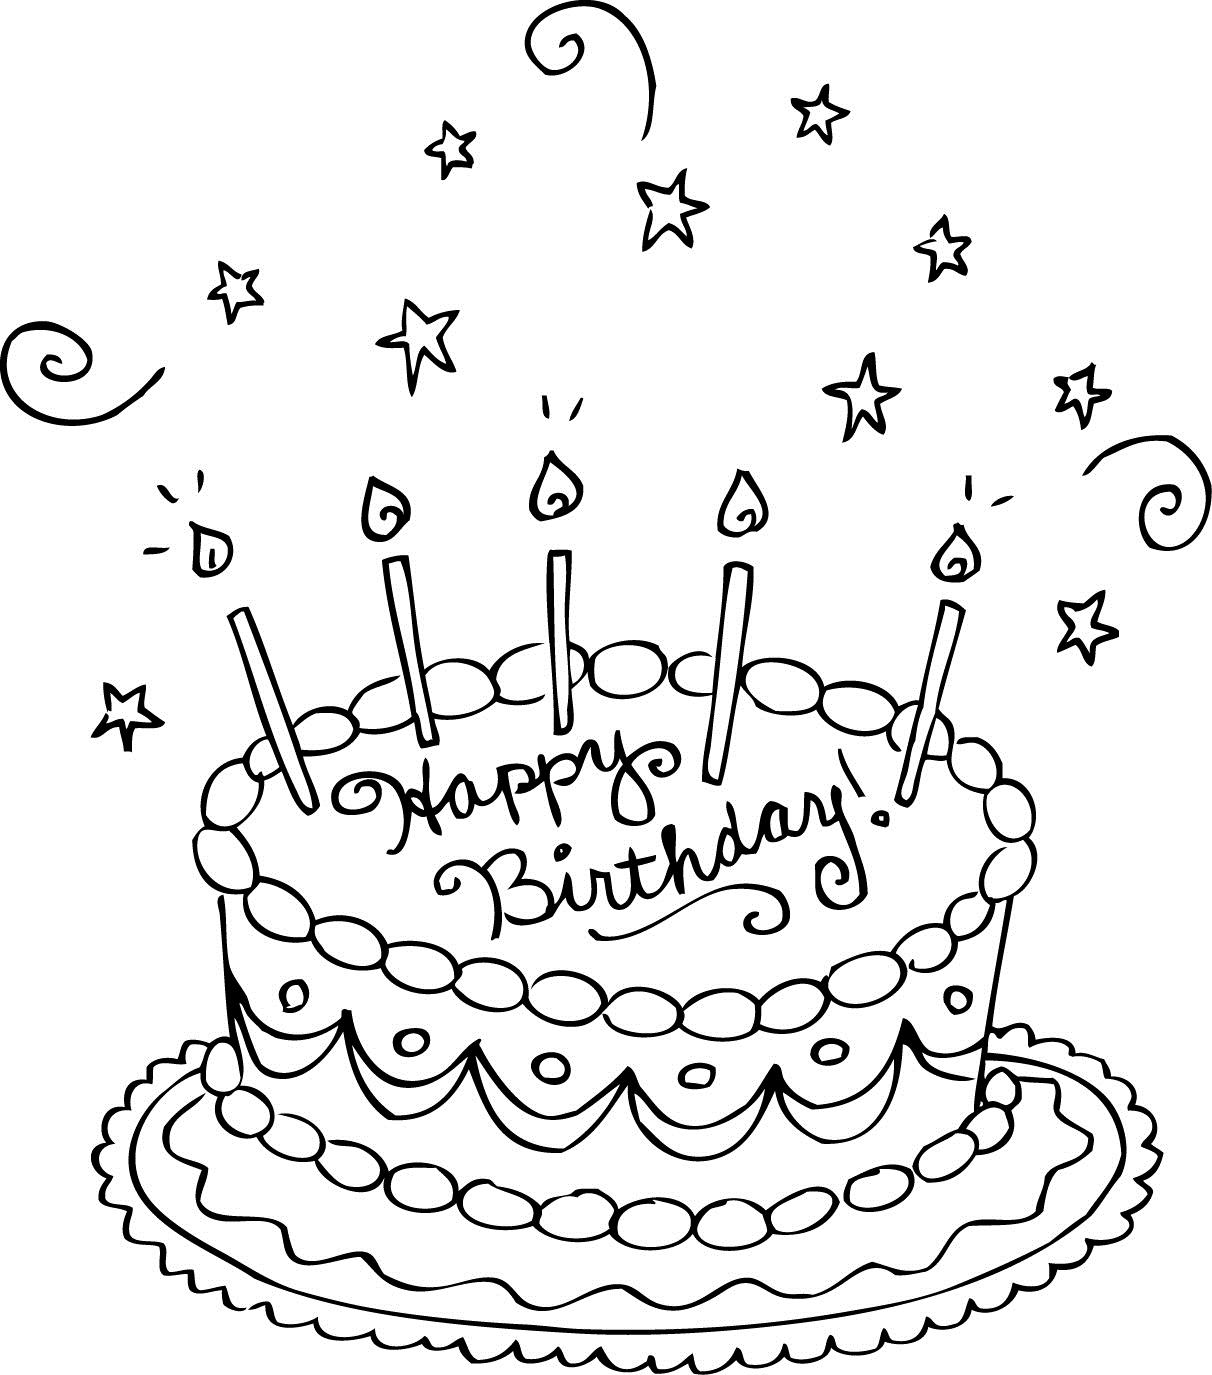 coloring pages for birthday cakes ; Coloring-Page-Birthday-Cake